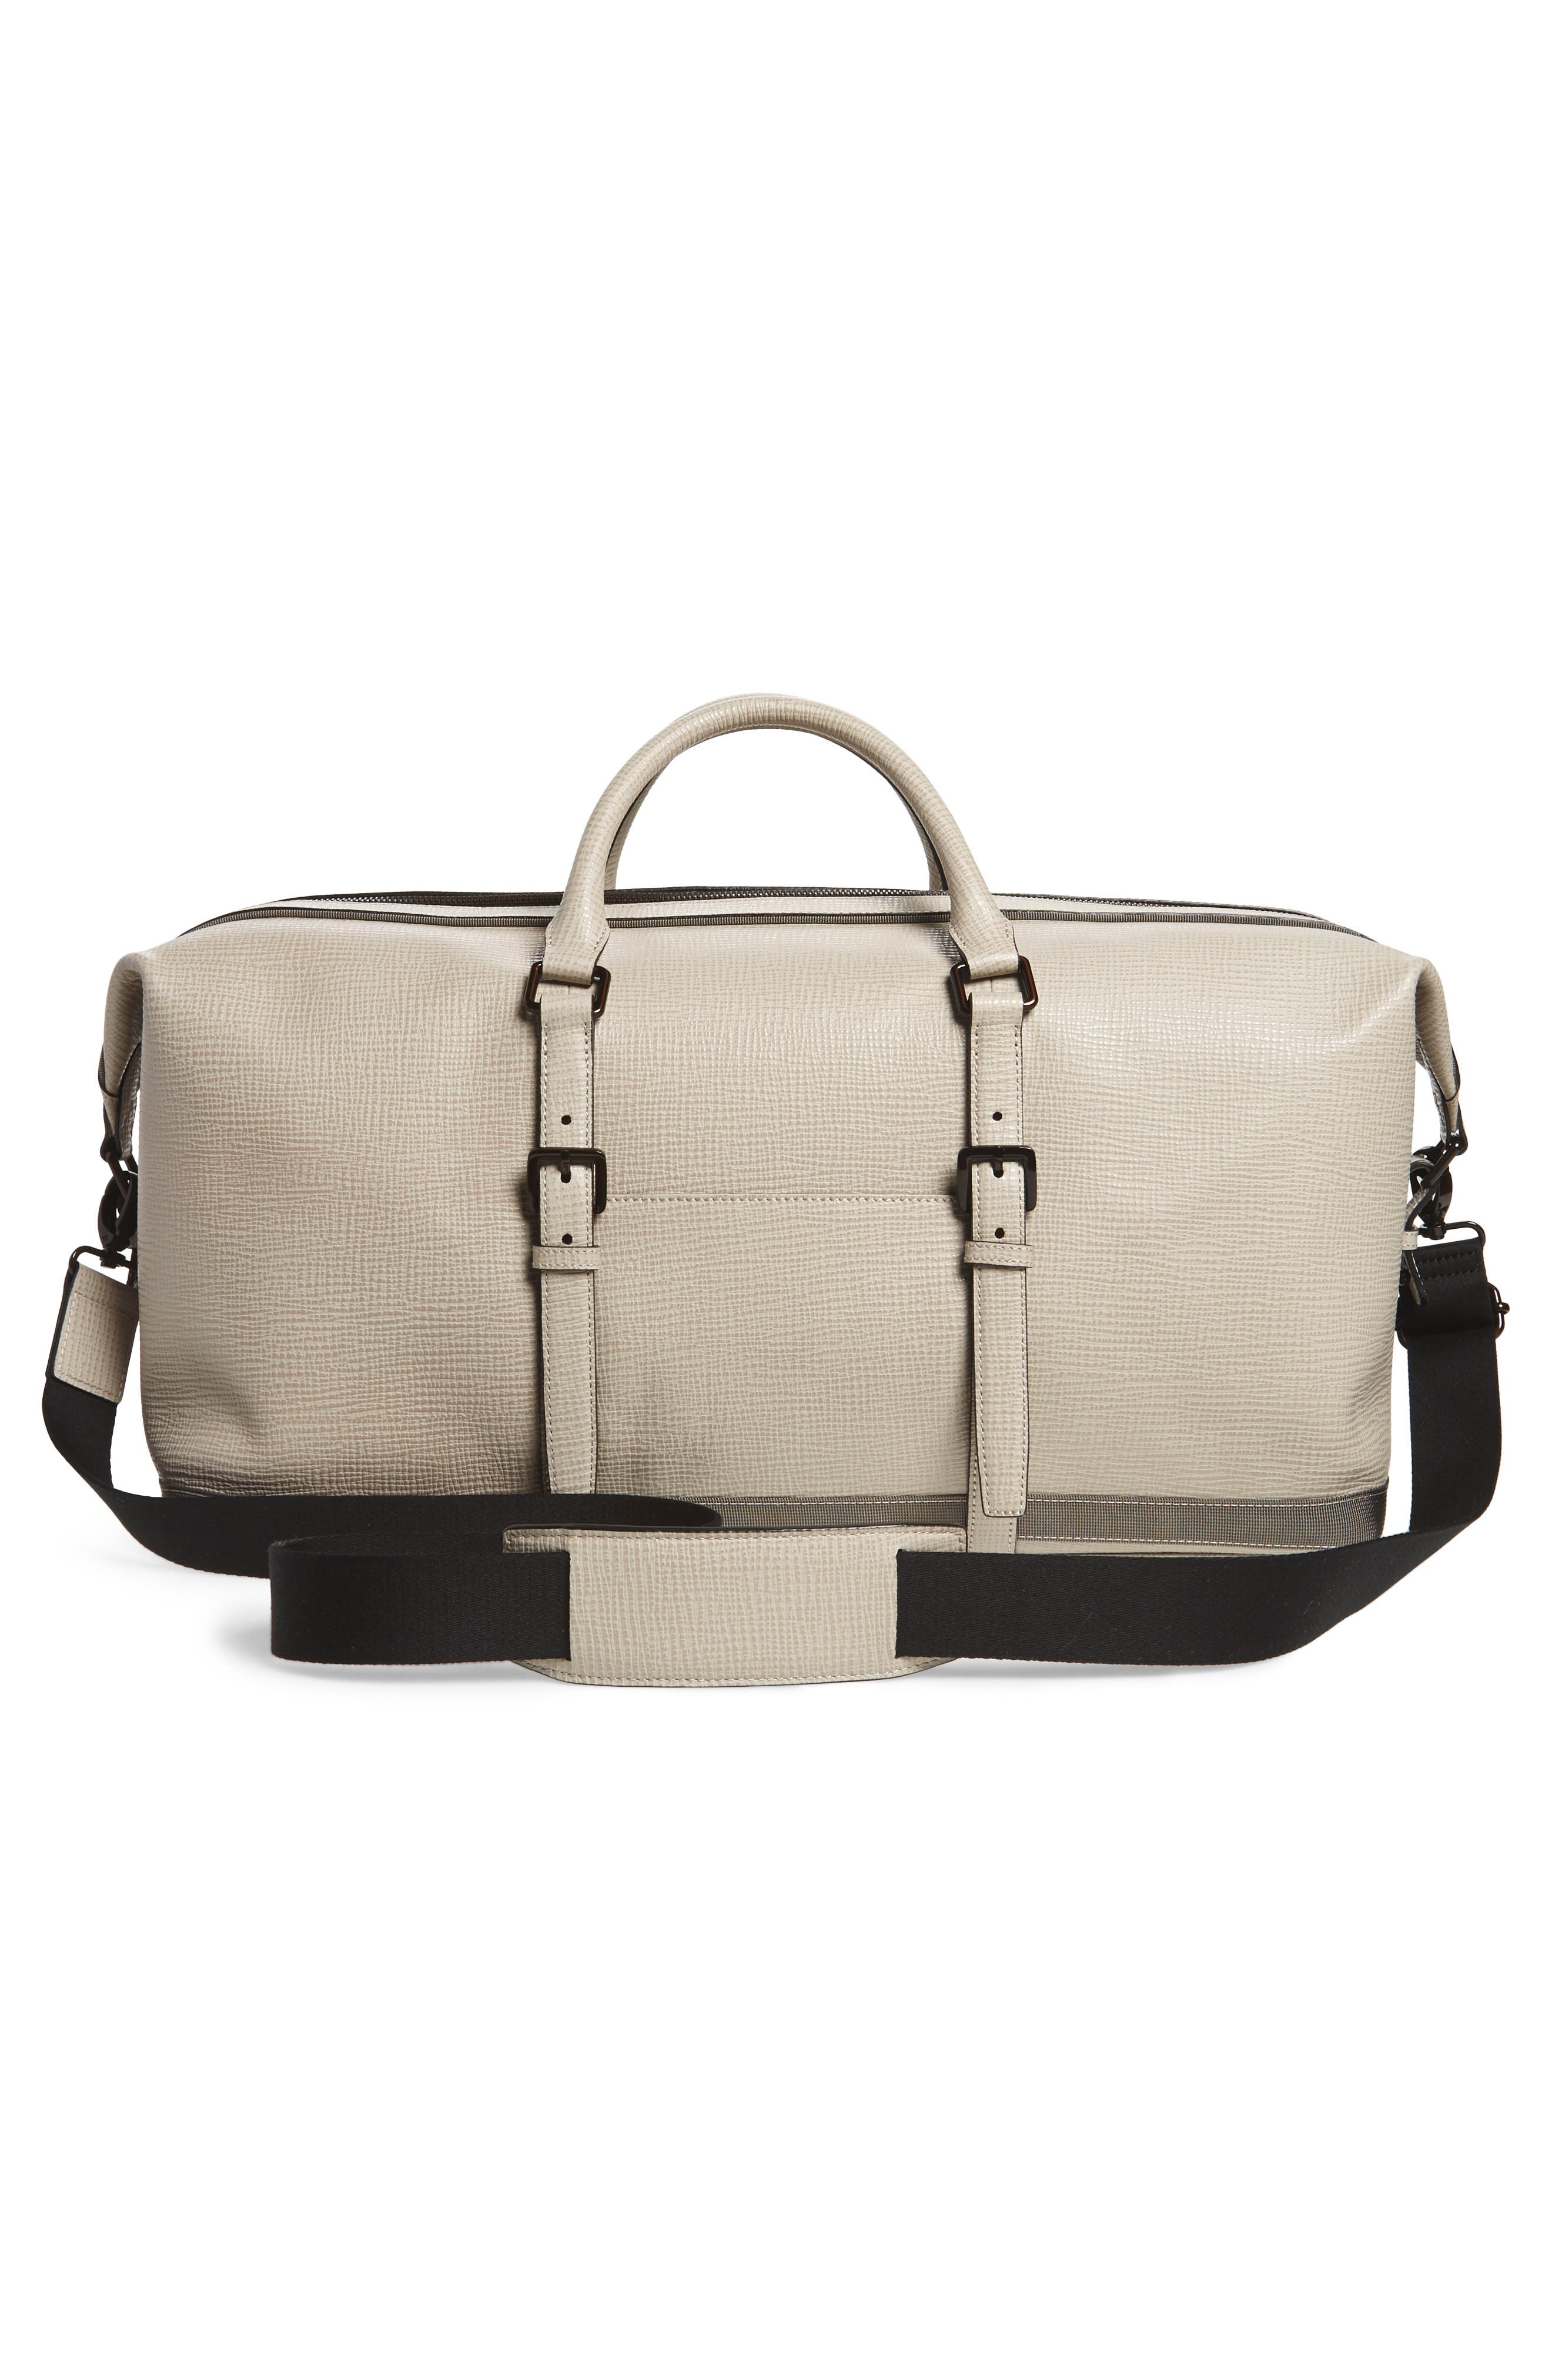 Ragmar Palmelato Holdall Duffel Bag,                             Alternate thumbnail 3, color,                             NATURAL